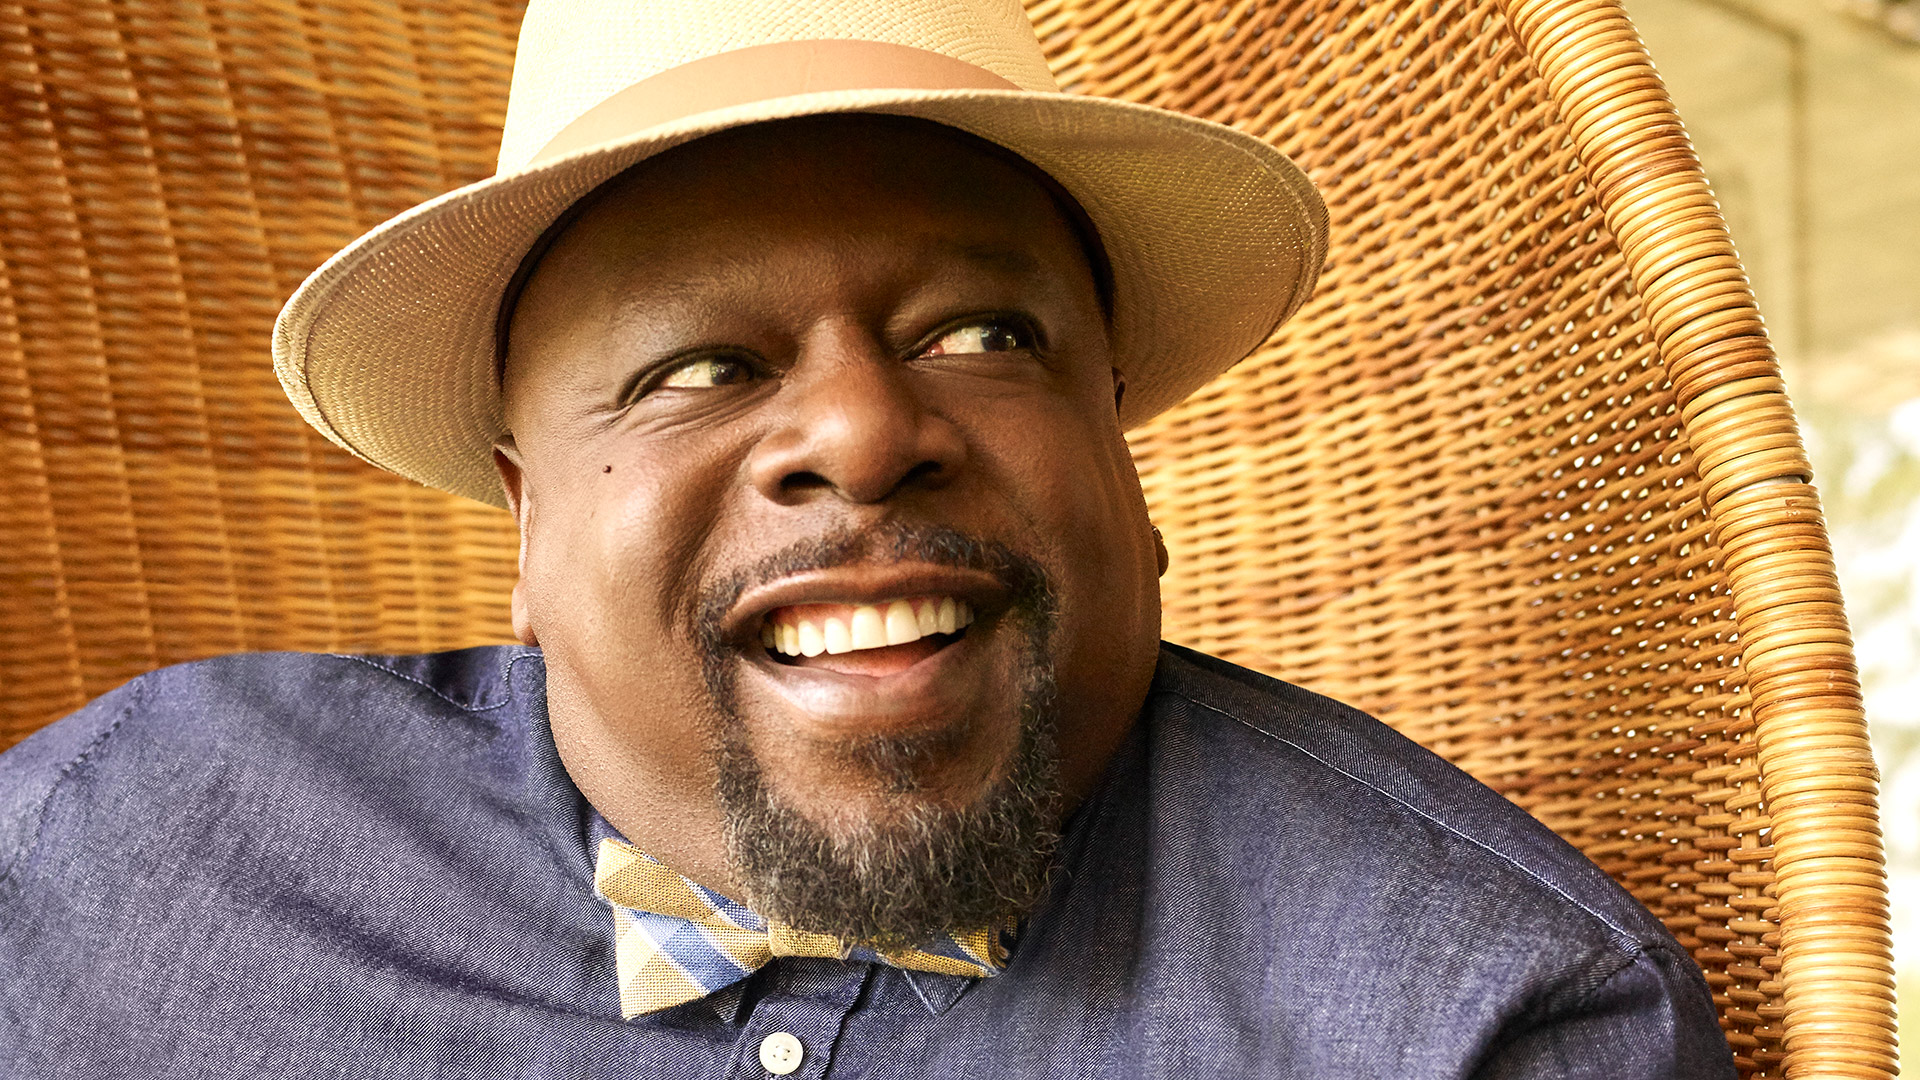 Cedric the Entertainer really is Mr. Nice Guy